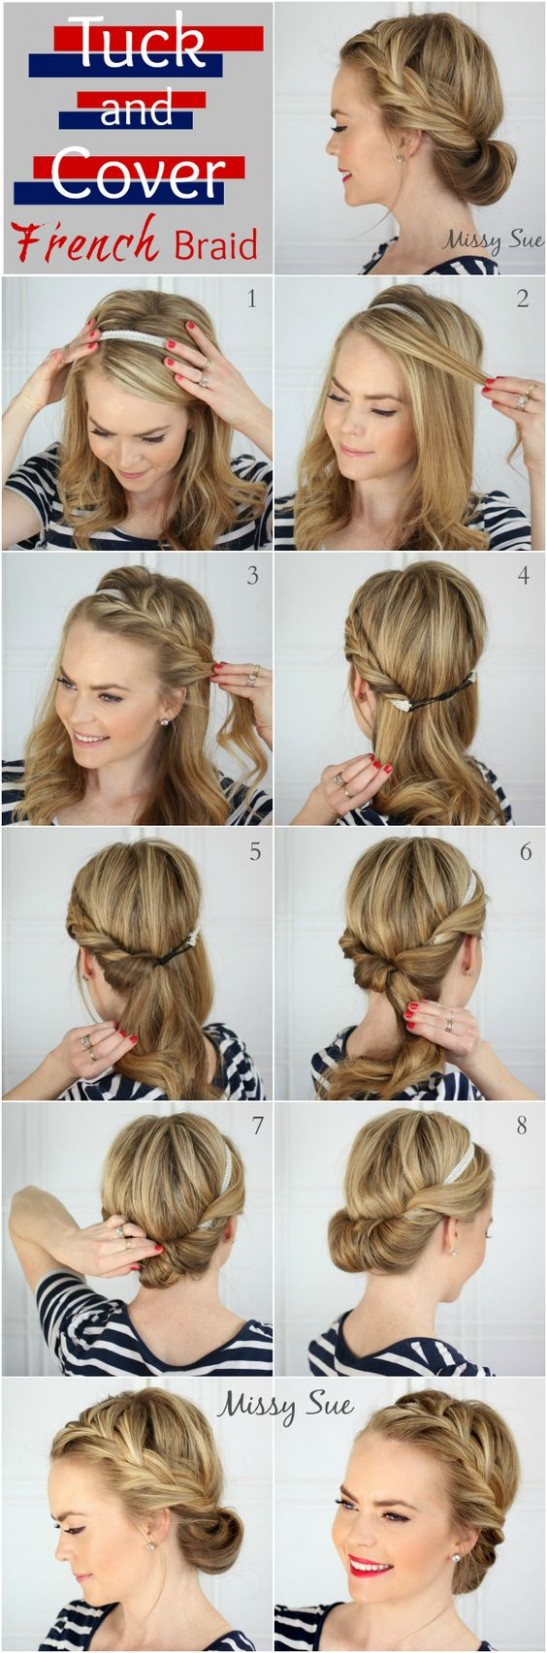 8 Easy Step By Step Hair Tutorials For Long, Medium,Short Hair Braids For Short Hair Step By Step